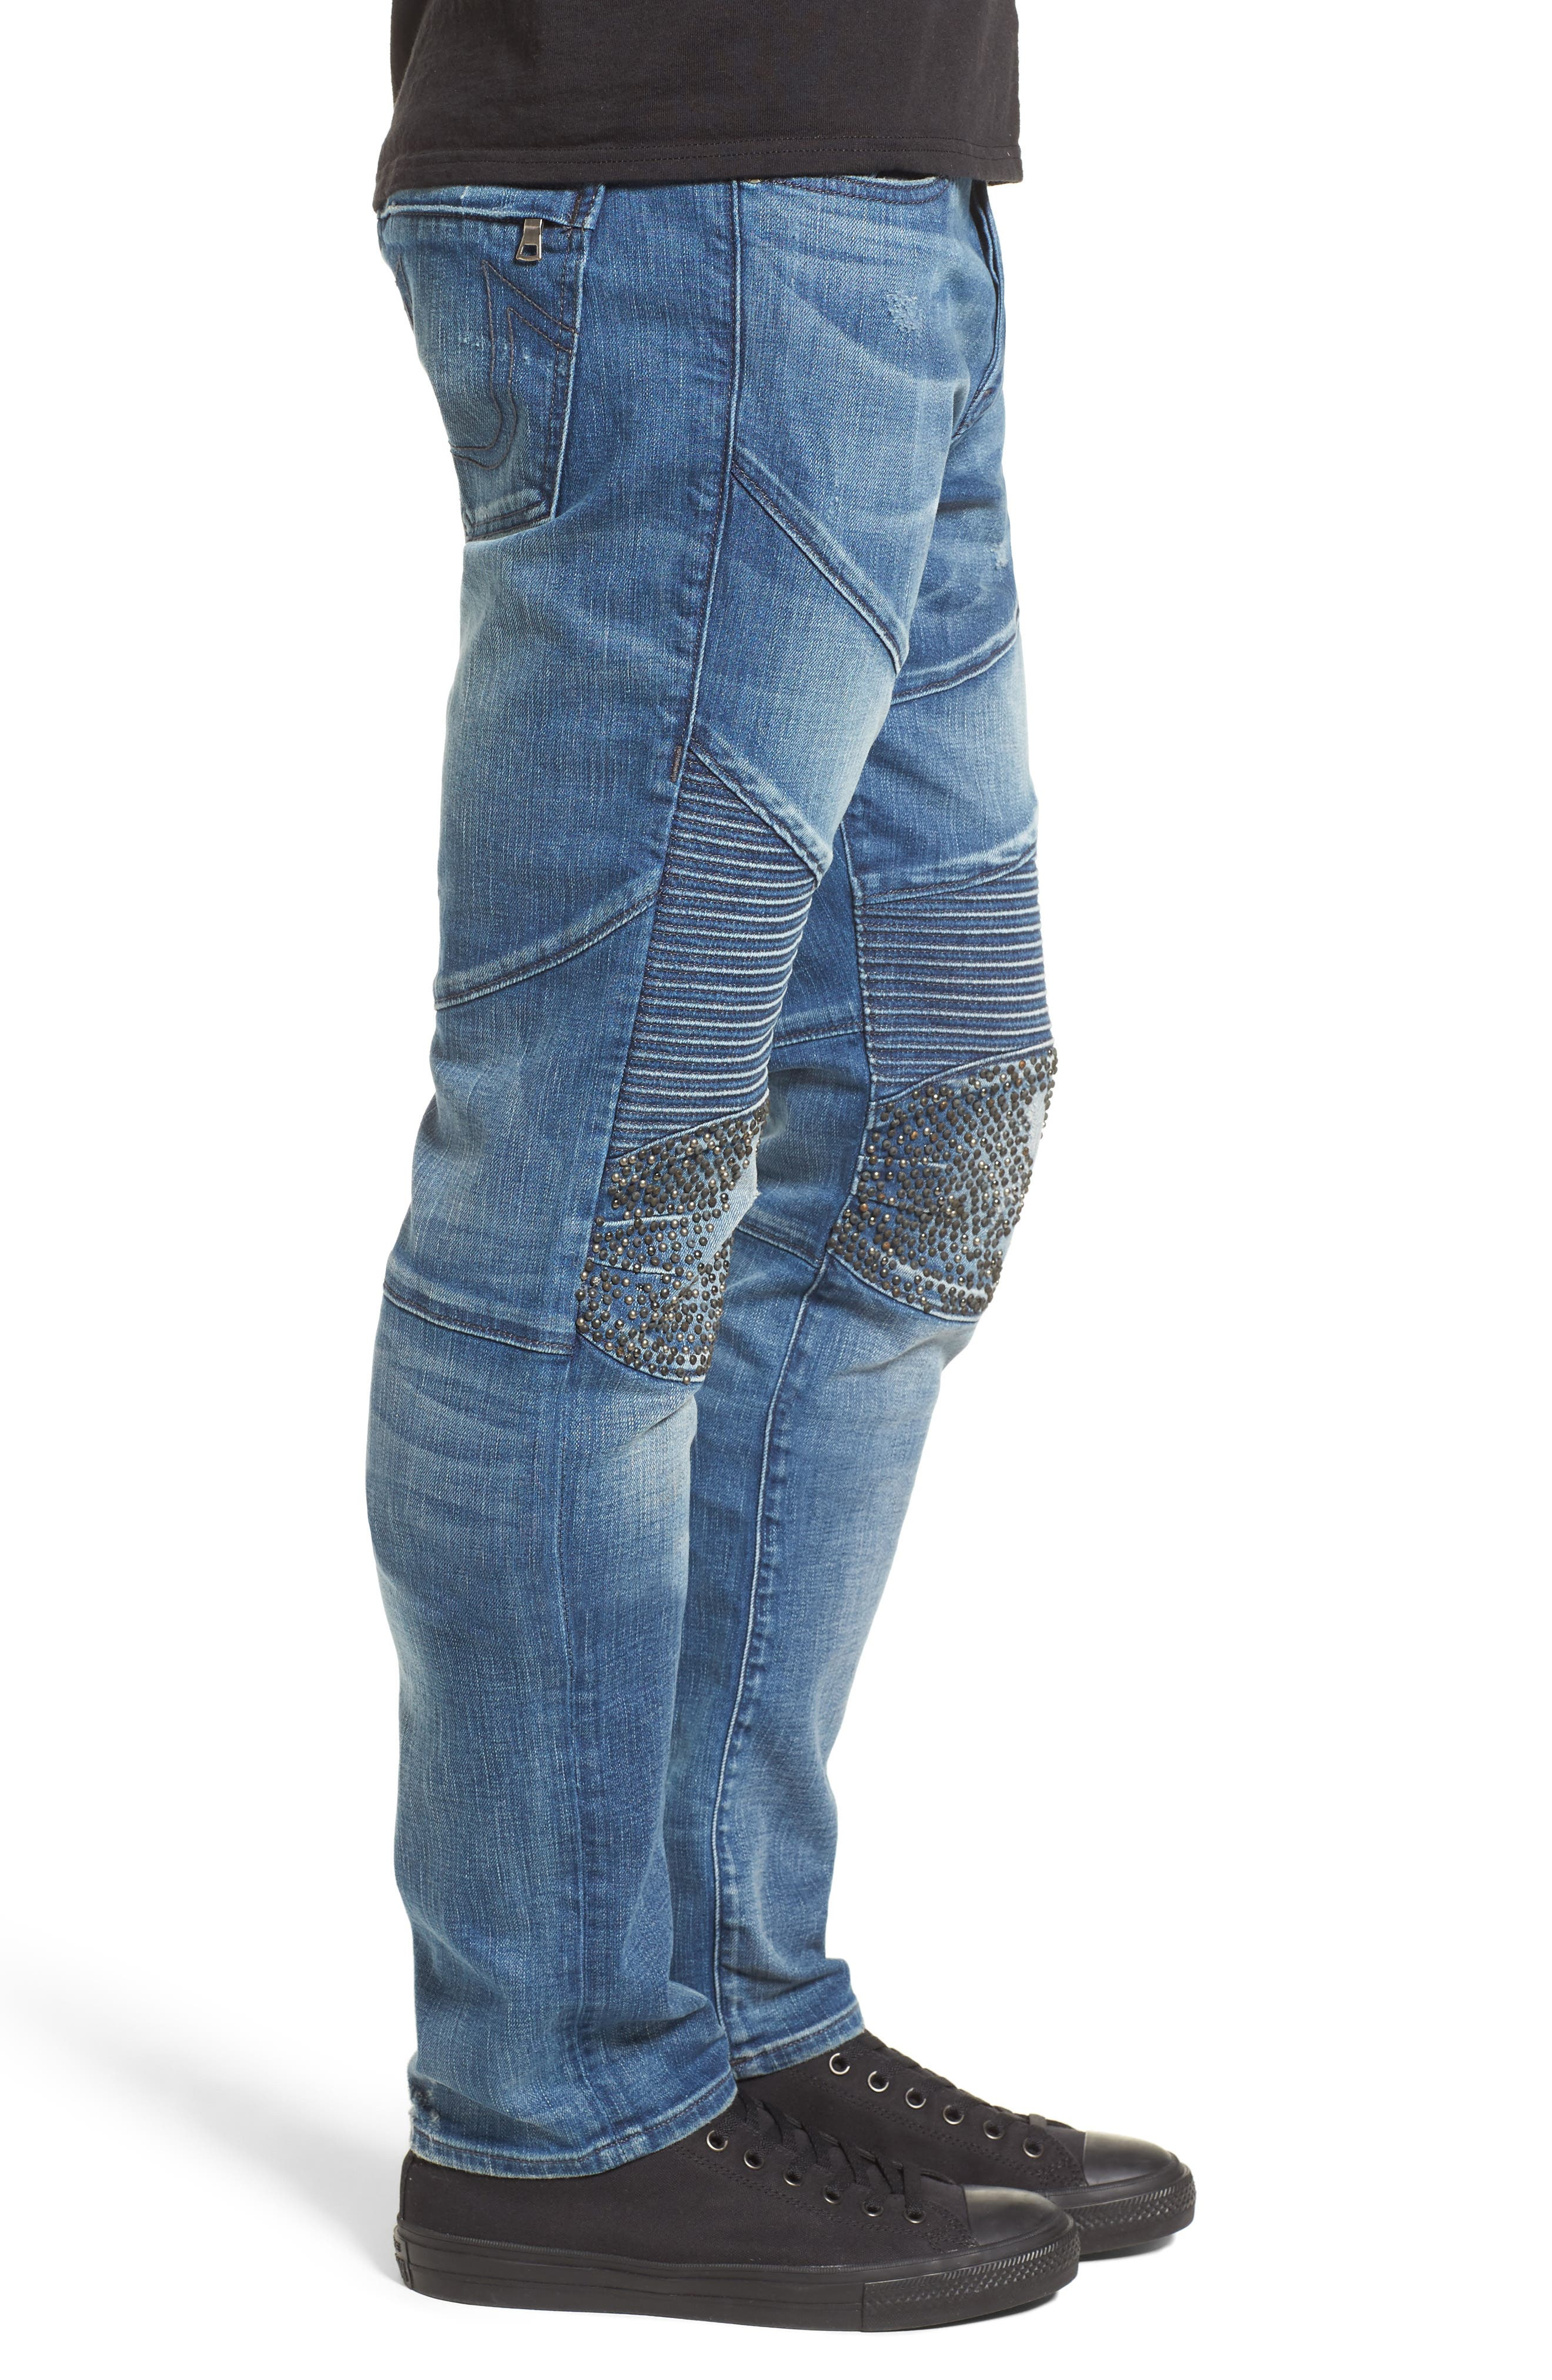 TRUE RELIGION BRAND JEANS,                             Rocco Skinny Fit Jeans,                             Alternate thumbnail 3, color,                             ENDLESS ROAD